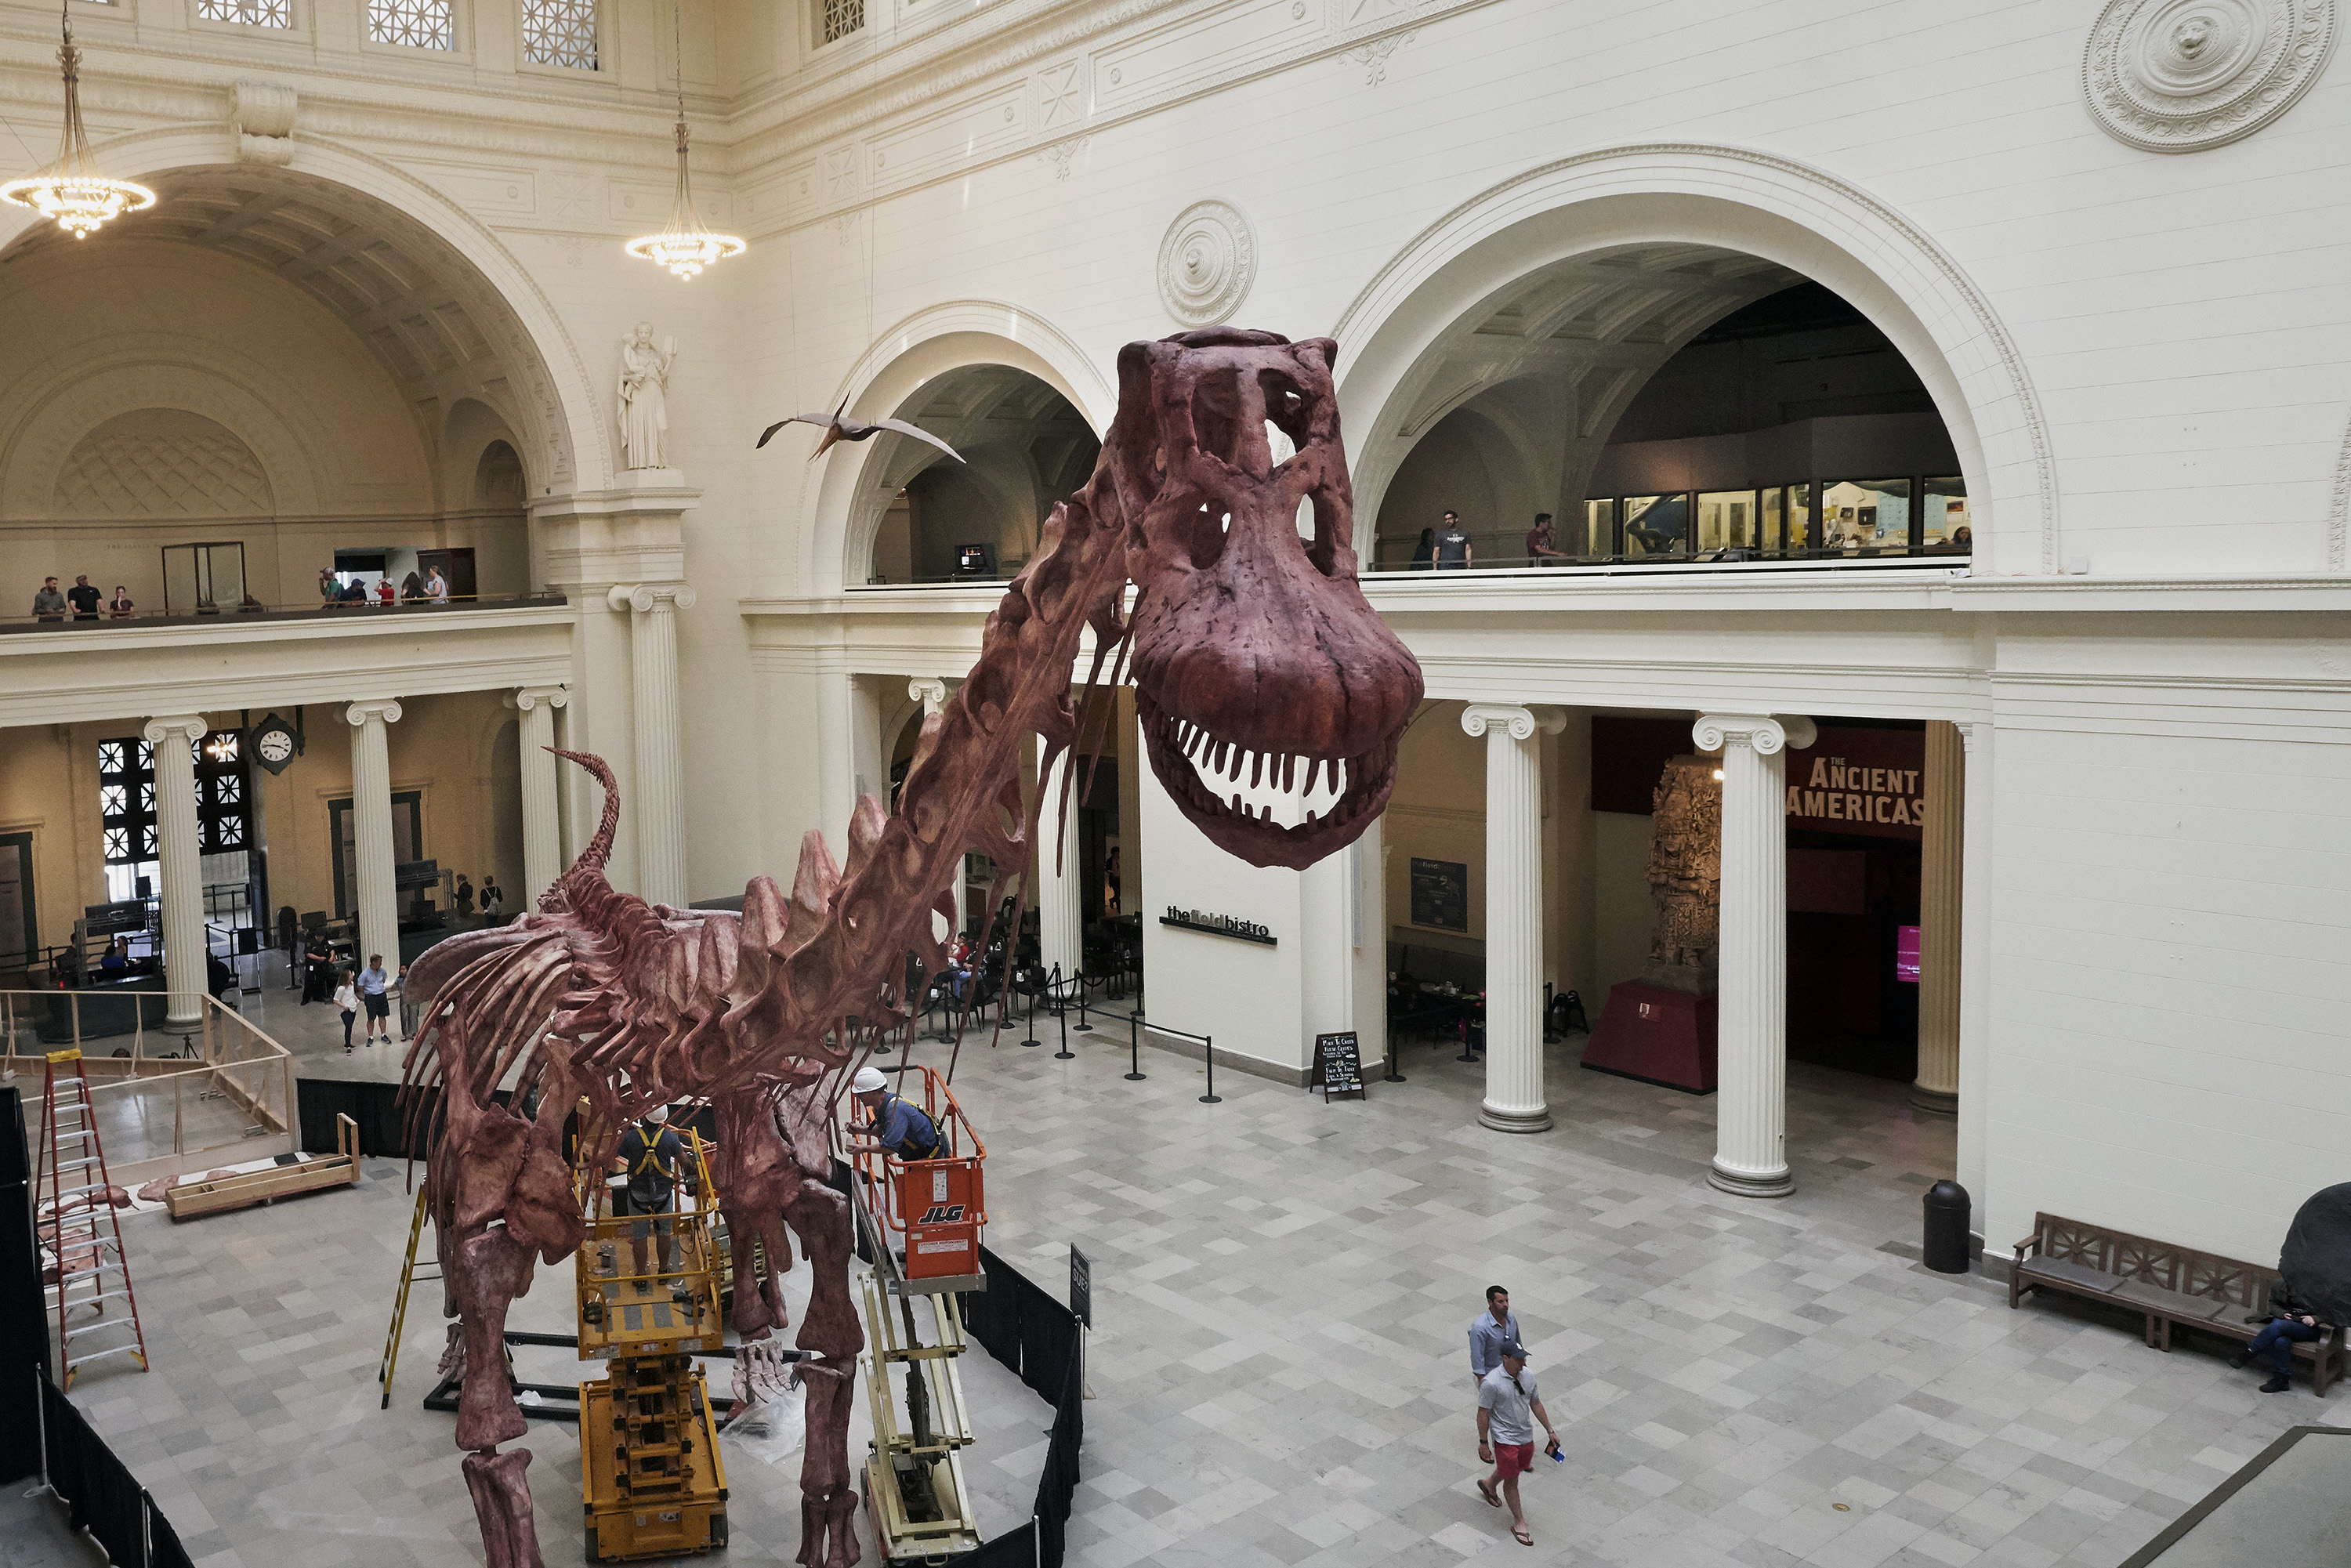 Looking straight on at the smiling, toothy skull of a large dinosaur. Its long neck and body extend downwards into the museum's main hall. A man wearing a hard hat stands on a lift and peers closely at one of the legs.